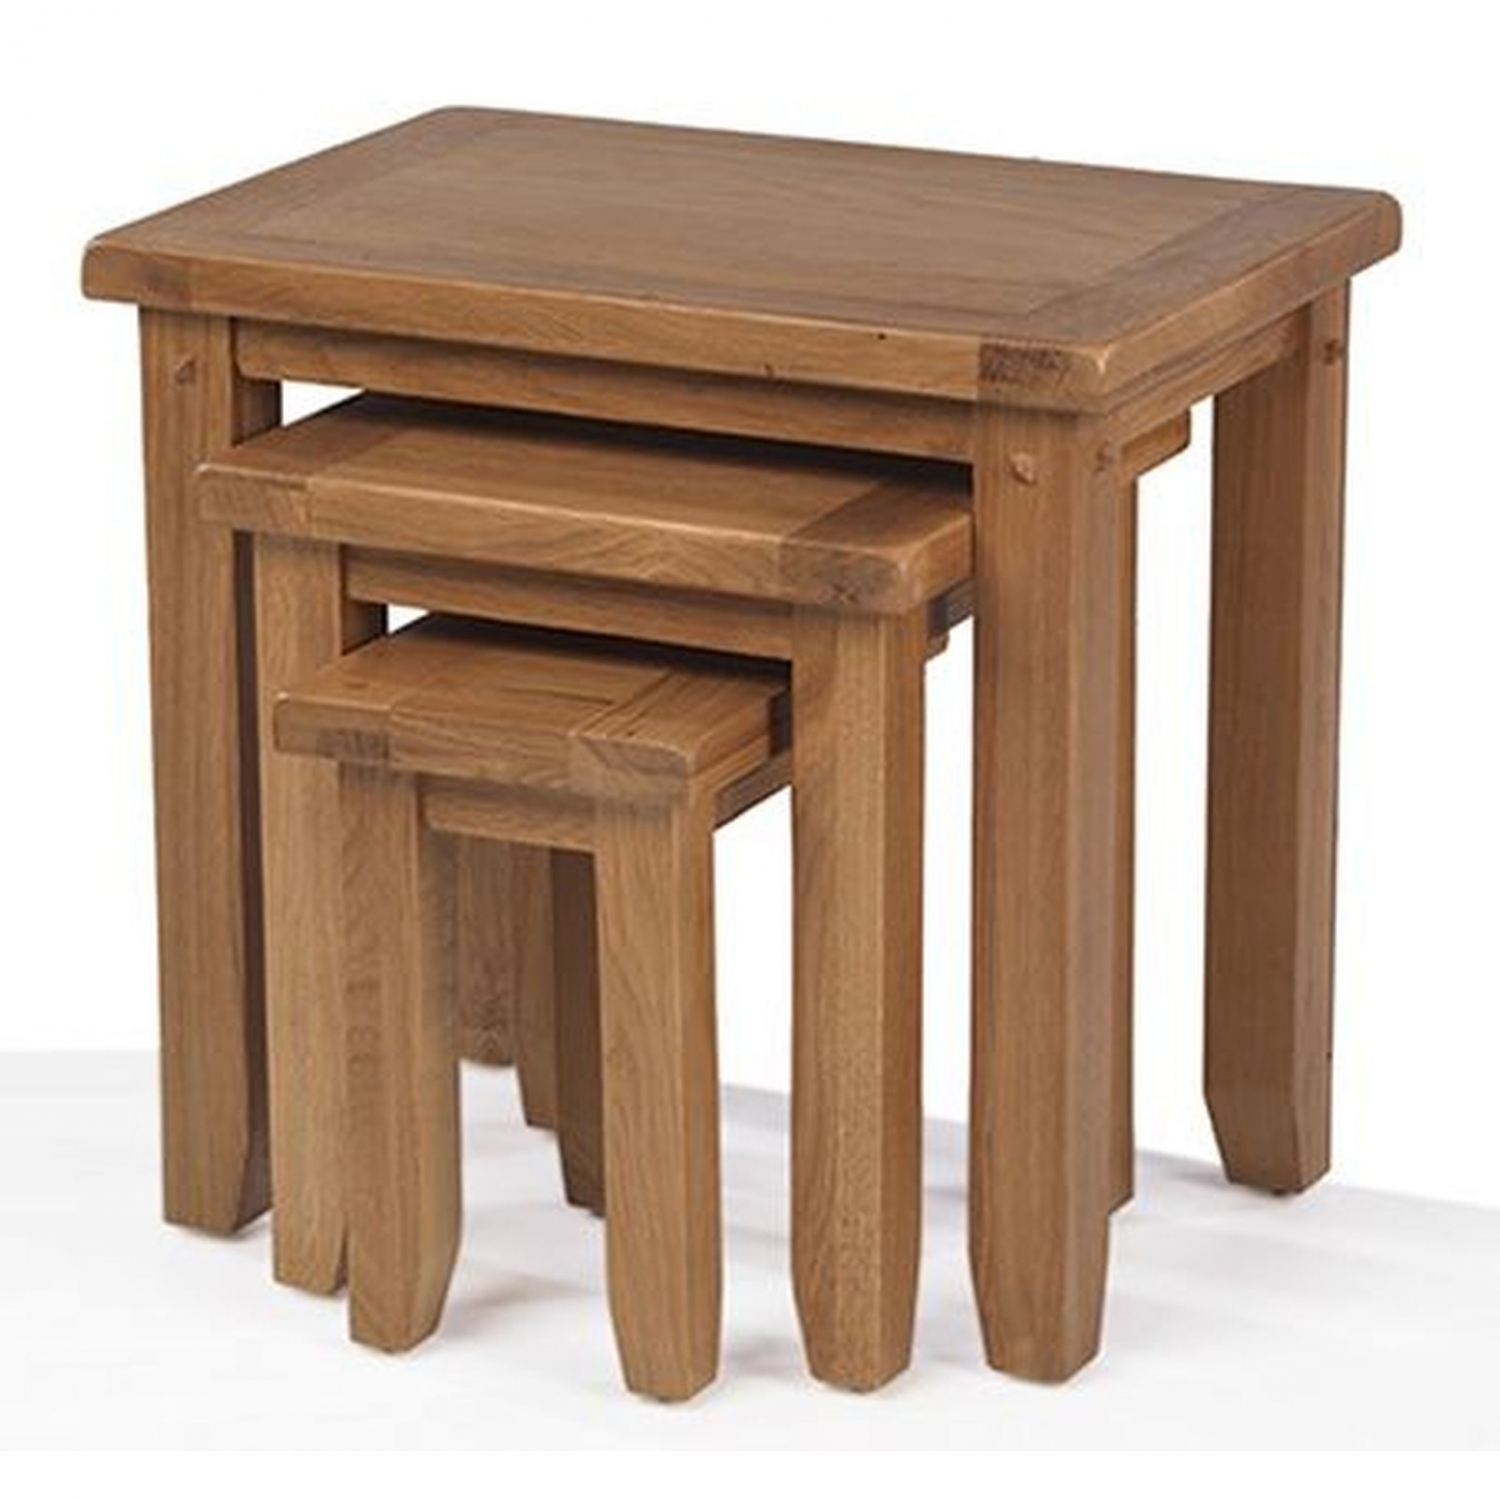 paloma oak furniture nest three coffee tables end details about small glass side for living room table and chairs sauder wood two antique white cottage big lots bag ping console